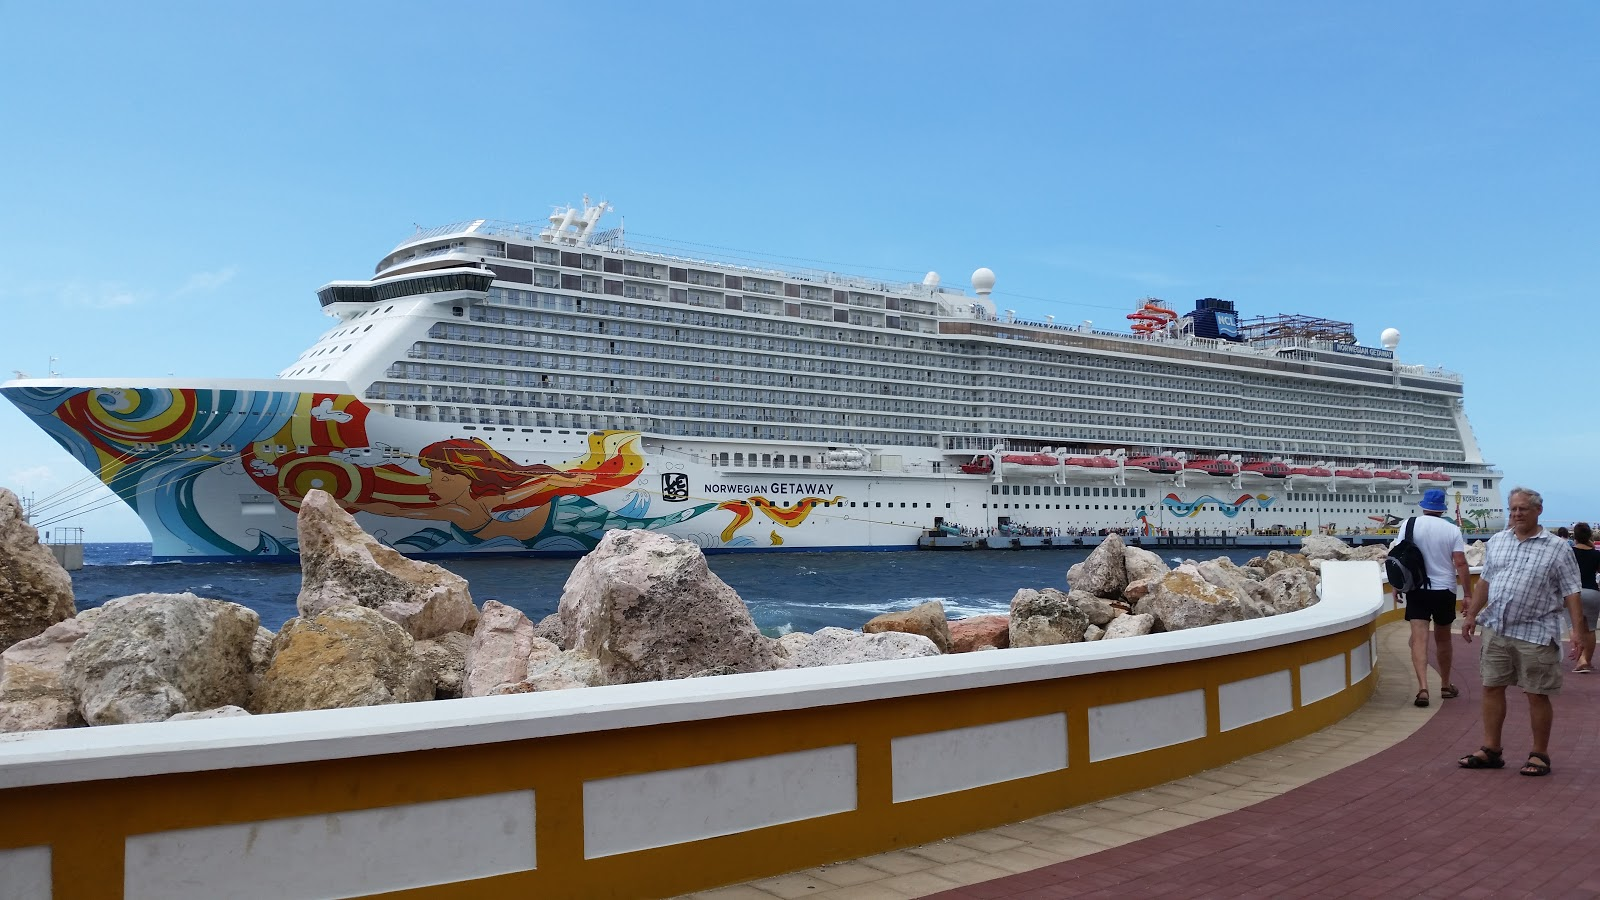 Travel Writer Review Norwegian Getaway